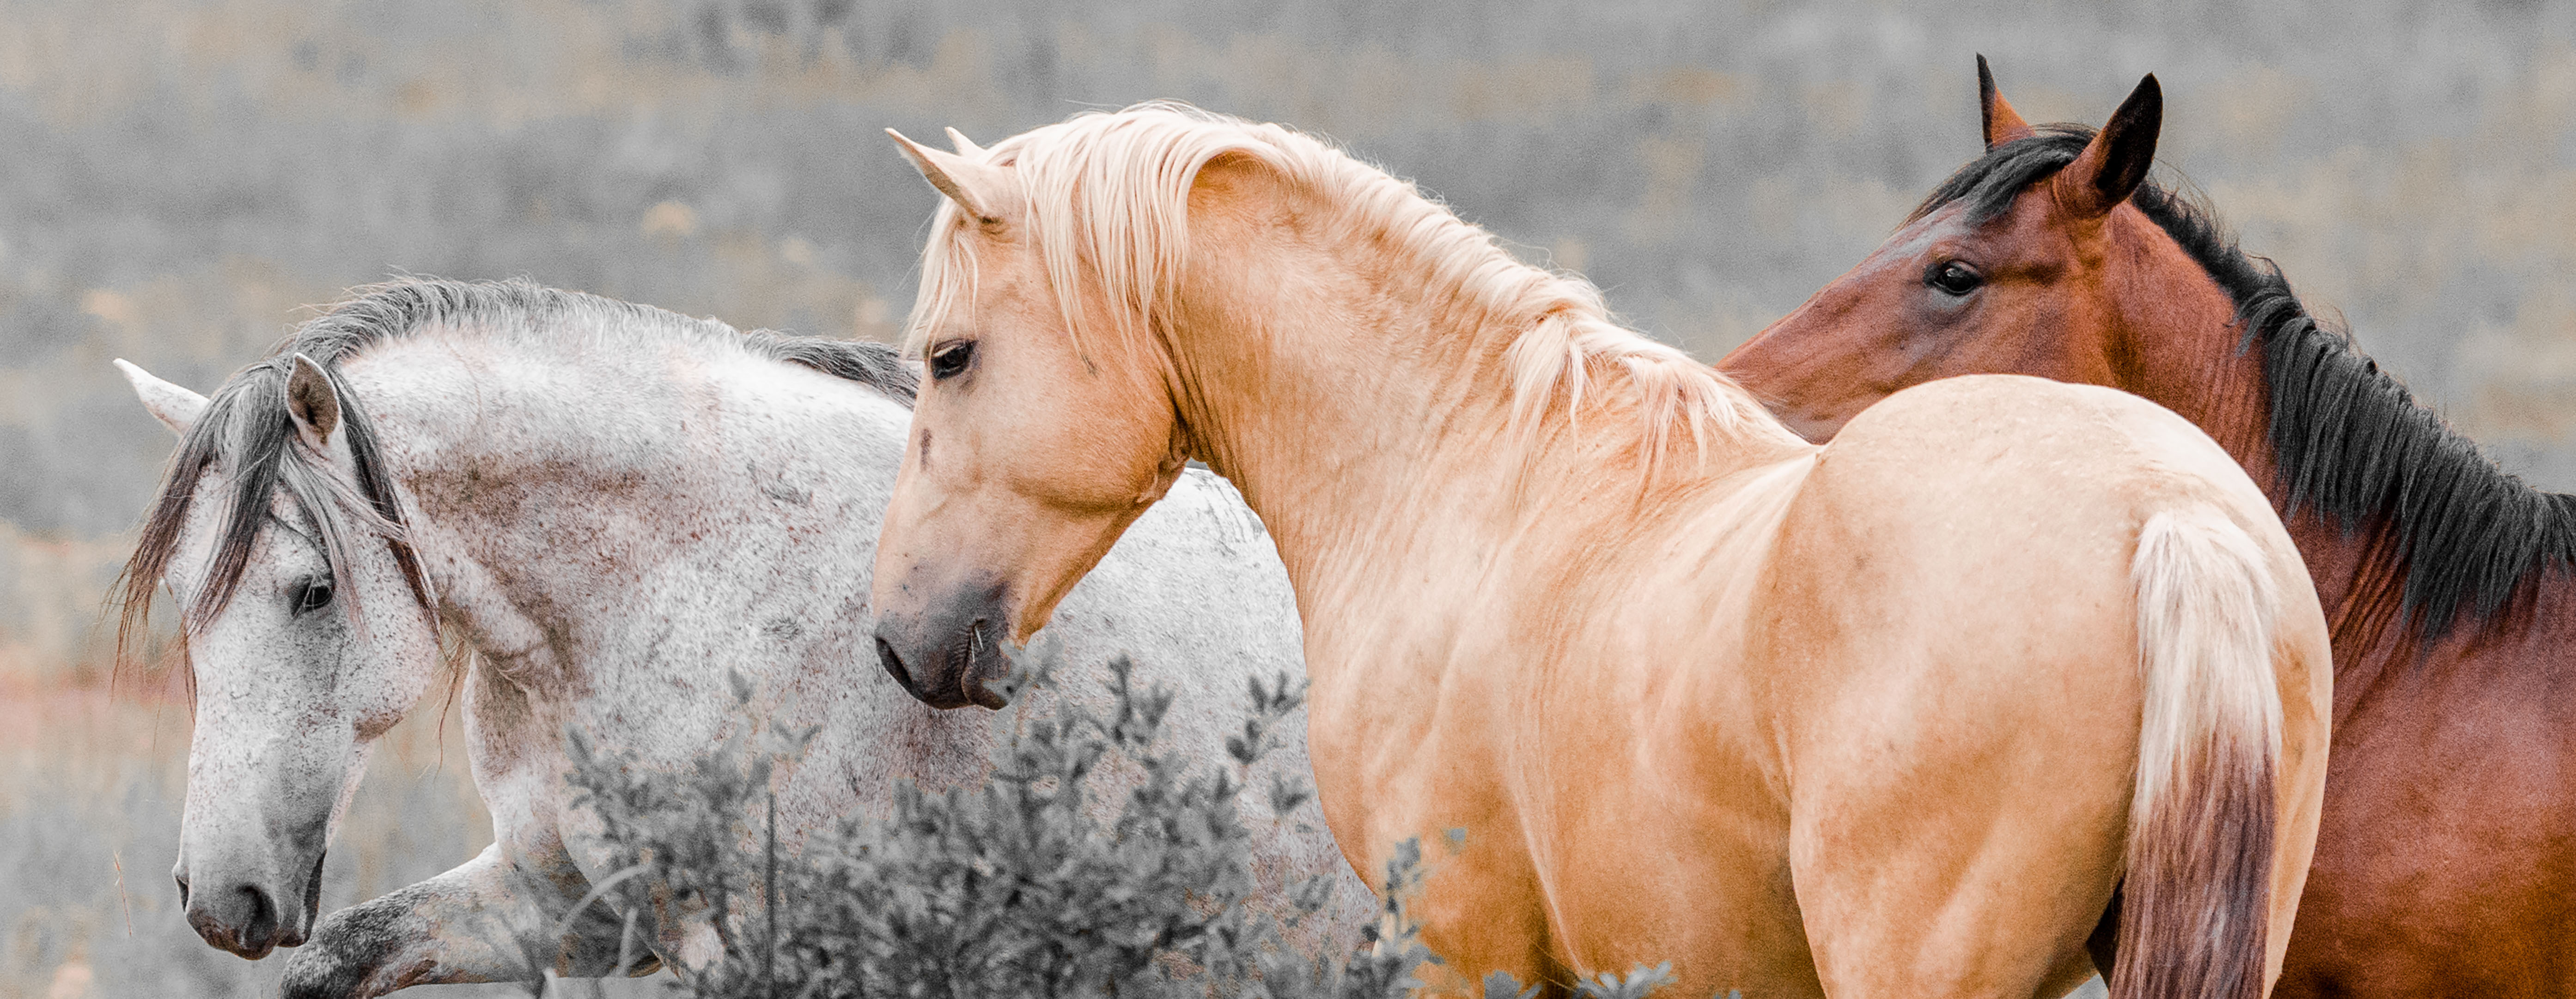 The Wild horses of Kaapsehoop